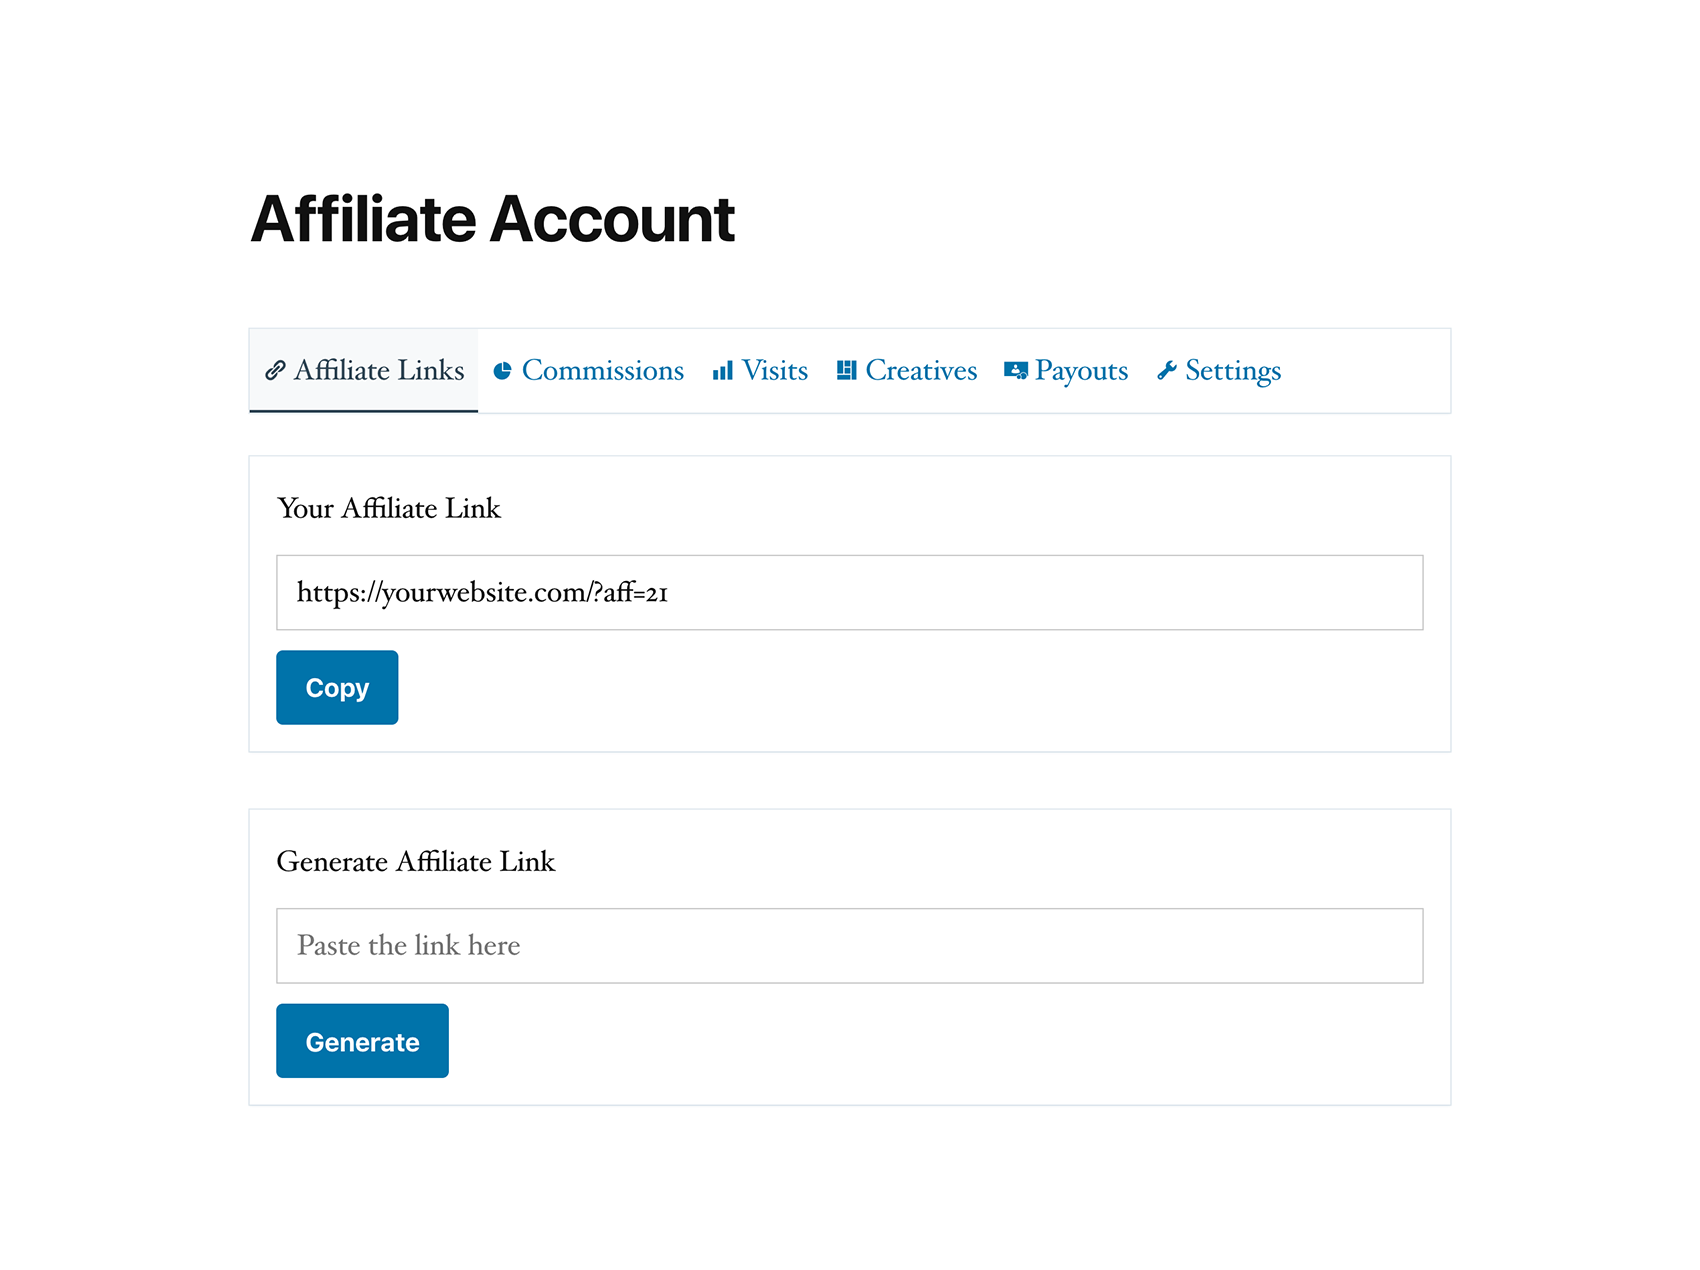 Affiliate account page, where affiliates can view their marketing performance.